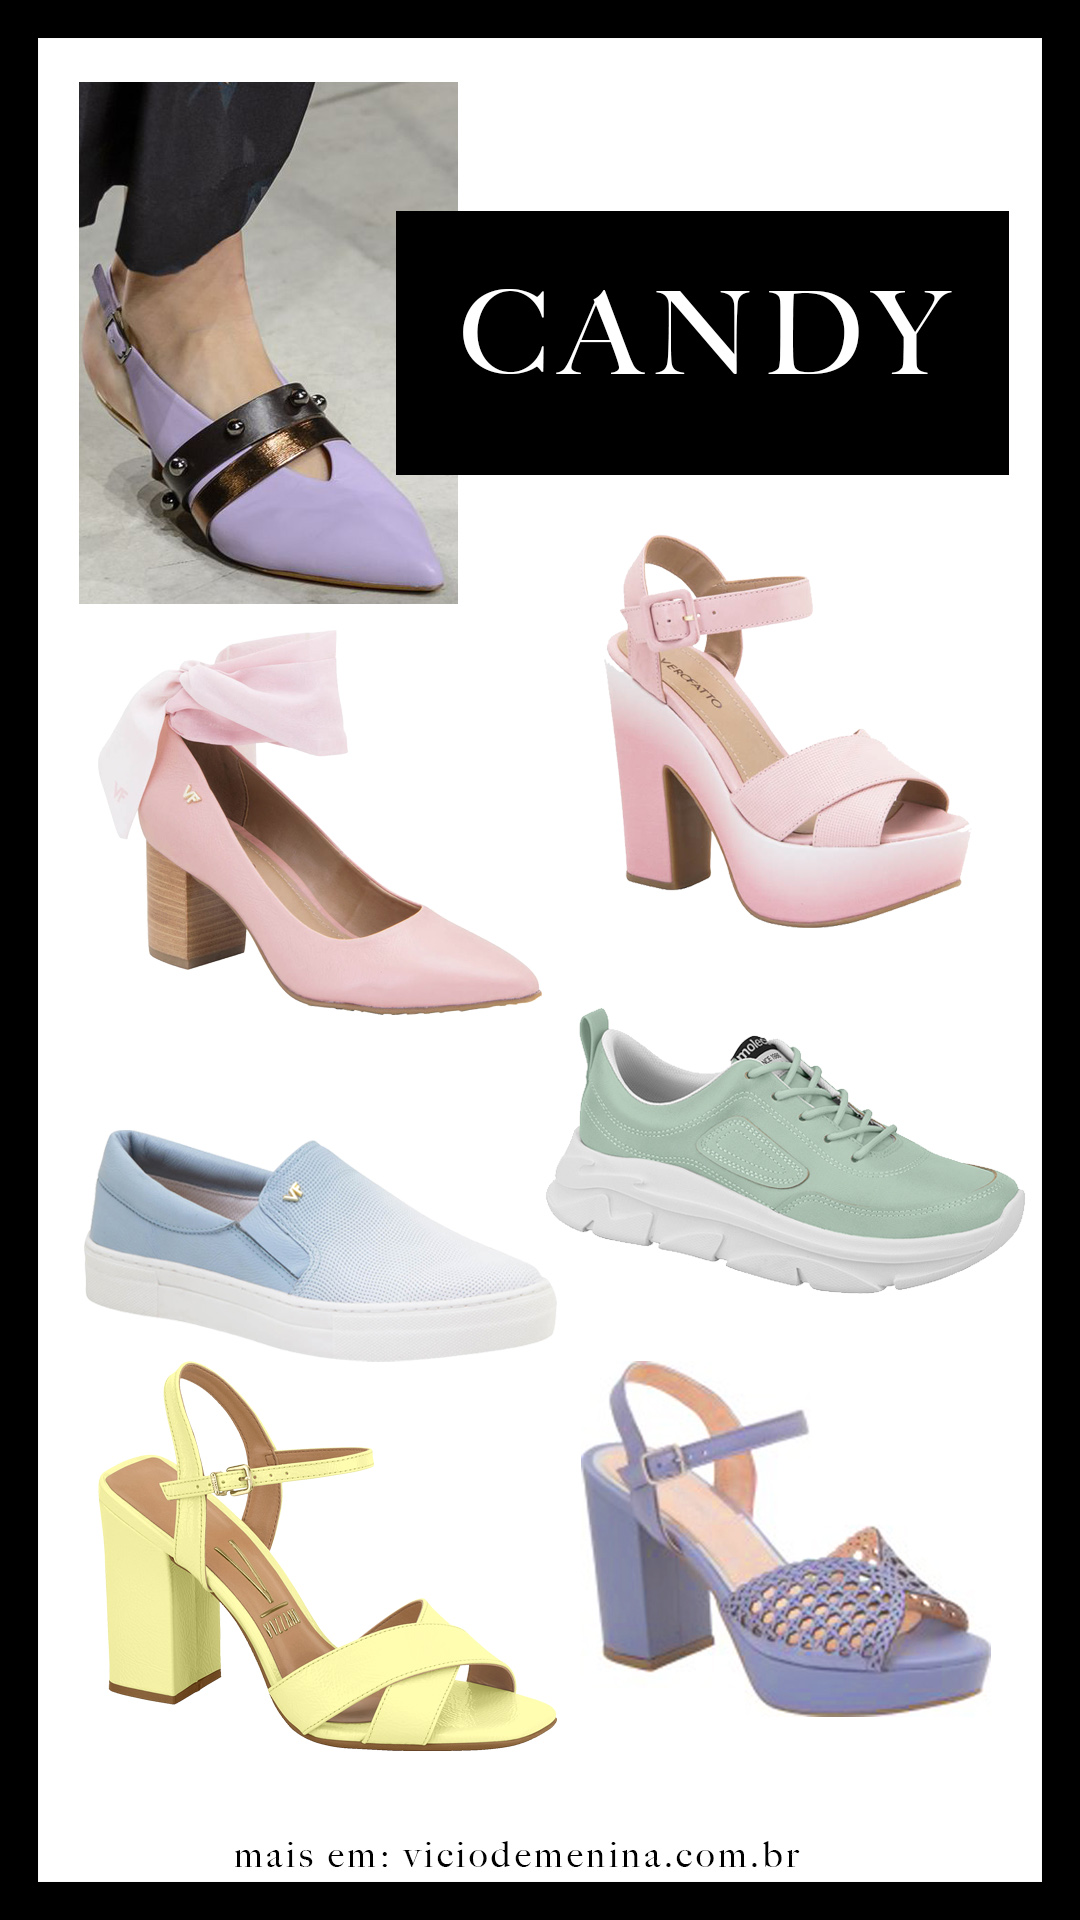 sapatos_tendencias_primavera_verao_candy